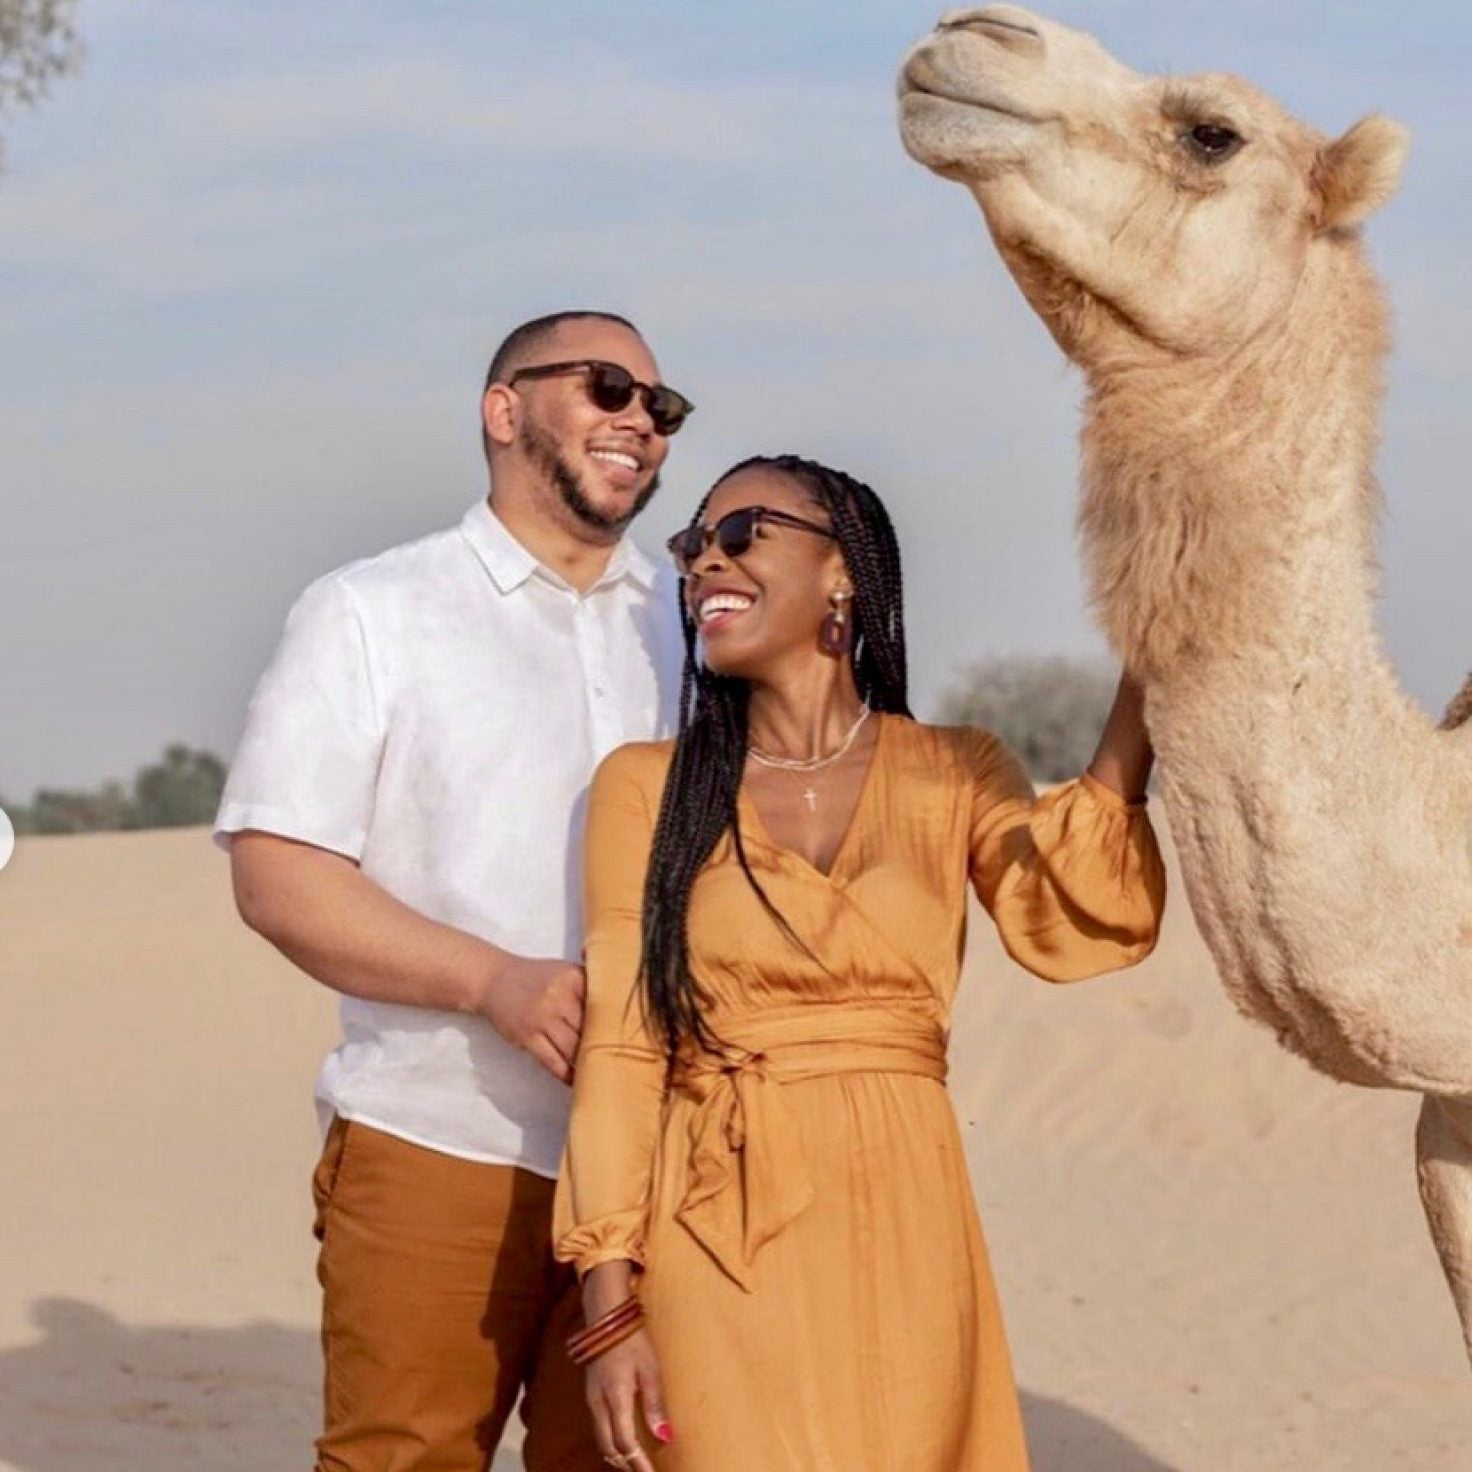 Black Travel Vibes: Look Toward The Future In Dubai